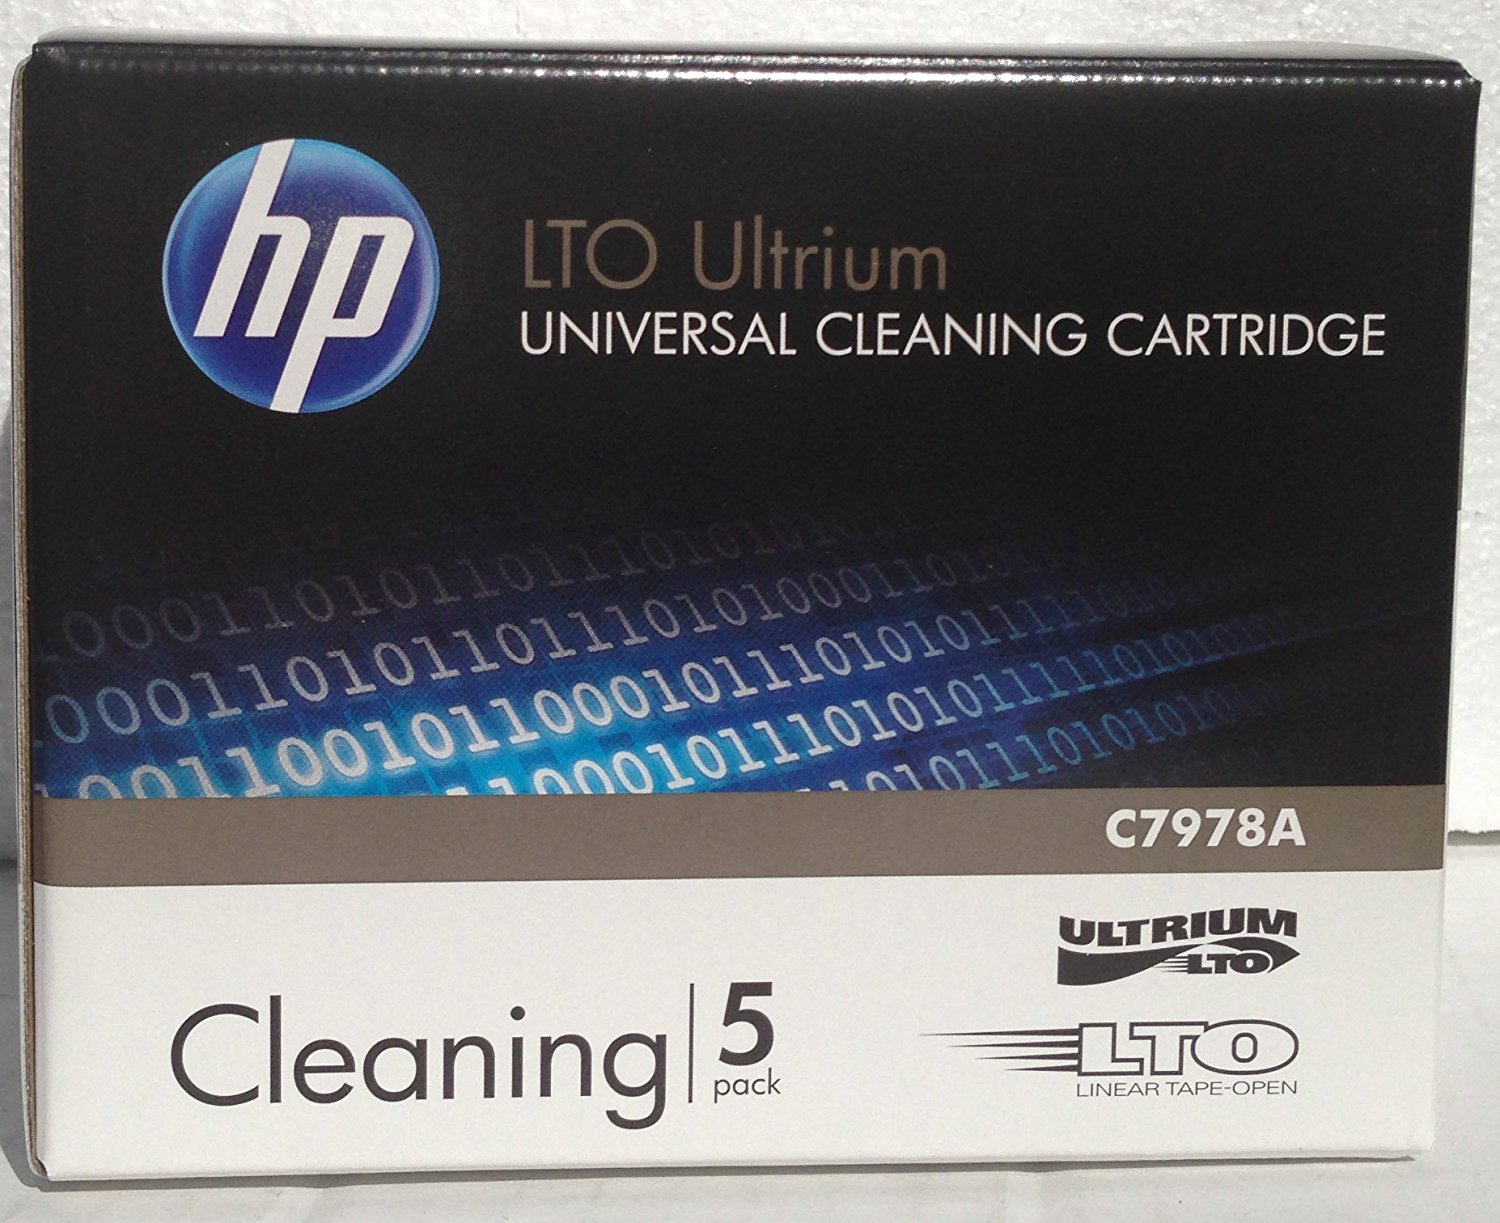 5 Pack HP C7978A Universal LTO Ultrium Cleaning Cartridge (New) by HP